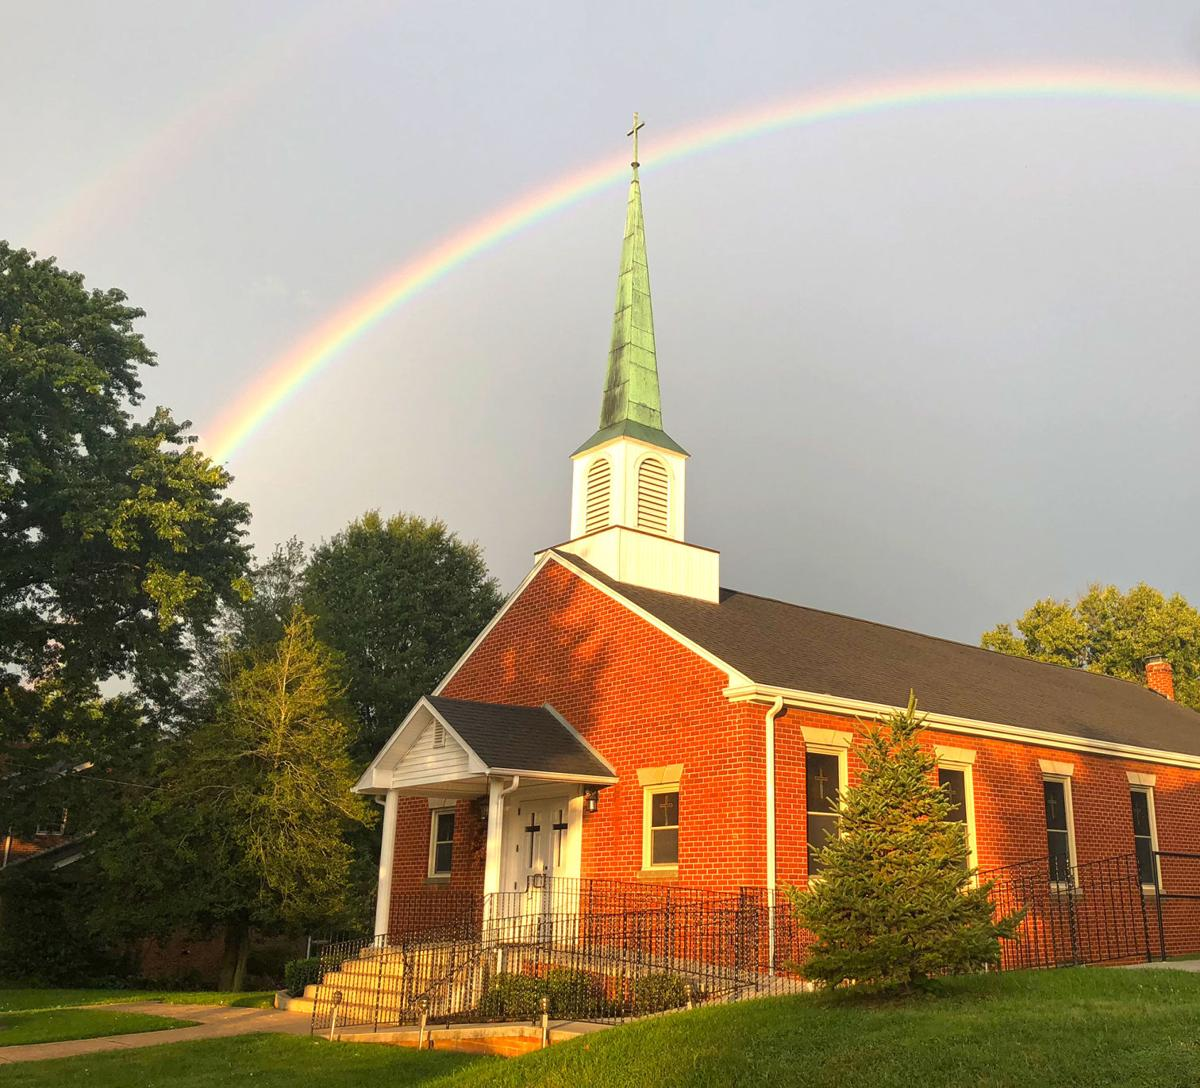 Did you catch the rainbow? Send us your photos!